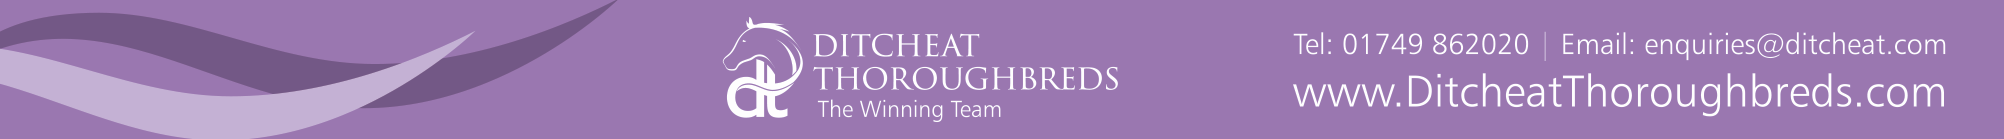 ditcheat_thoroughbreds